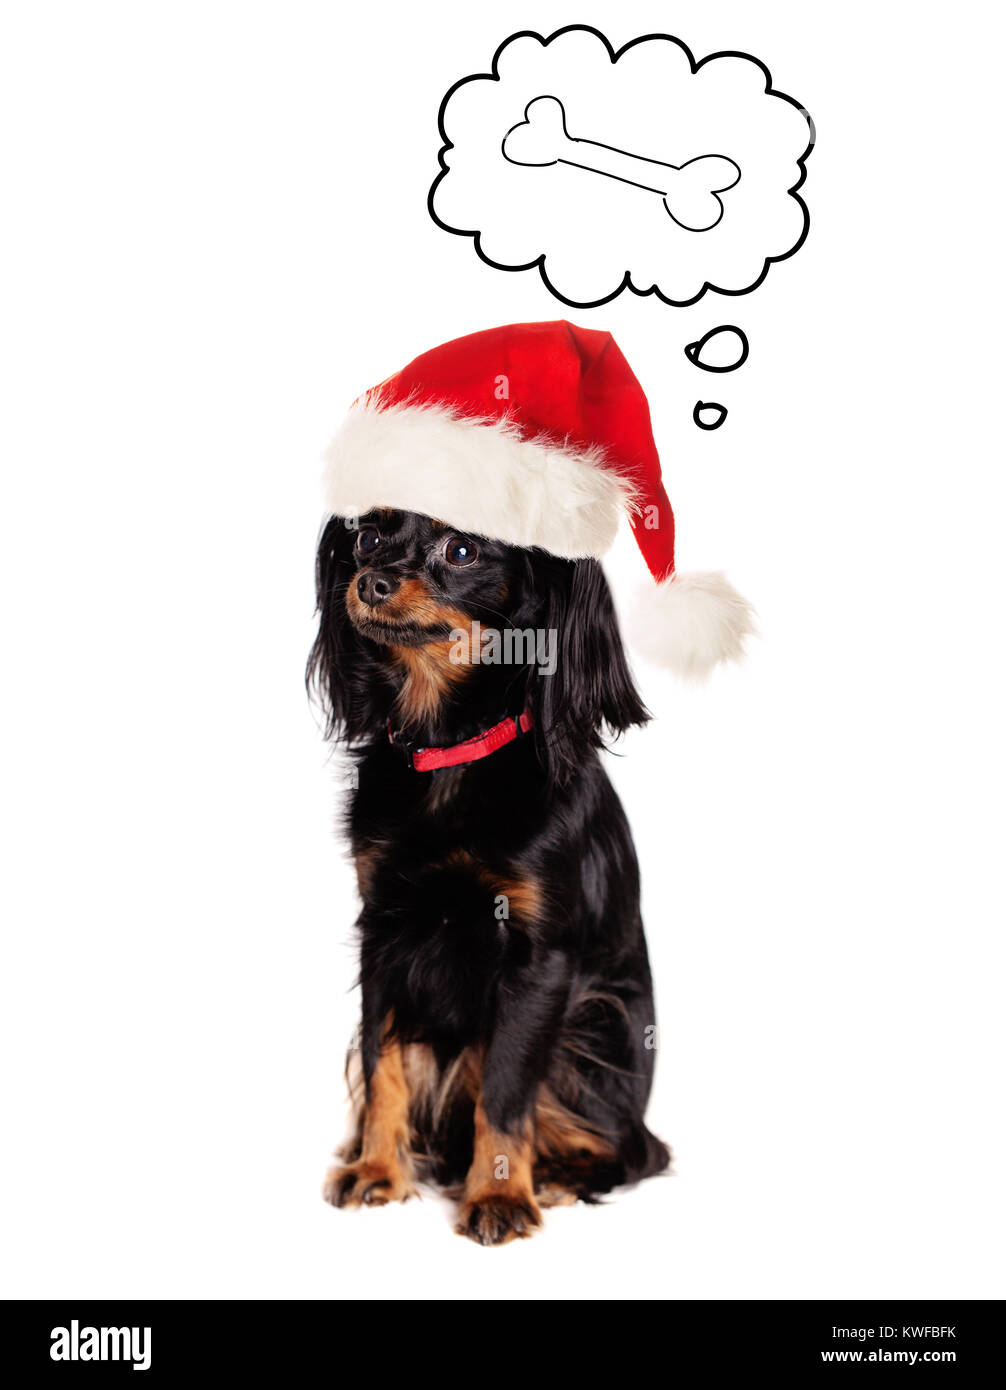 Dog in Santa Hat dreaming on Tasty Food on White Background - Stock Image